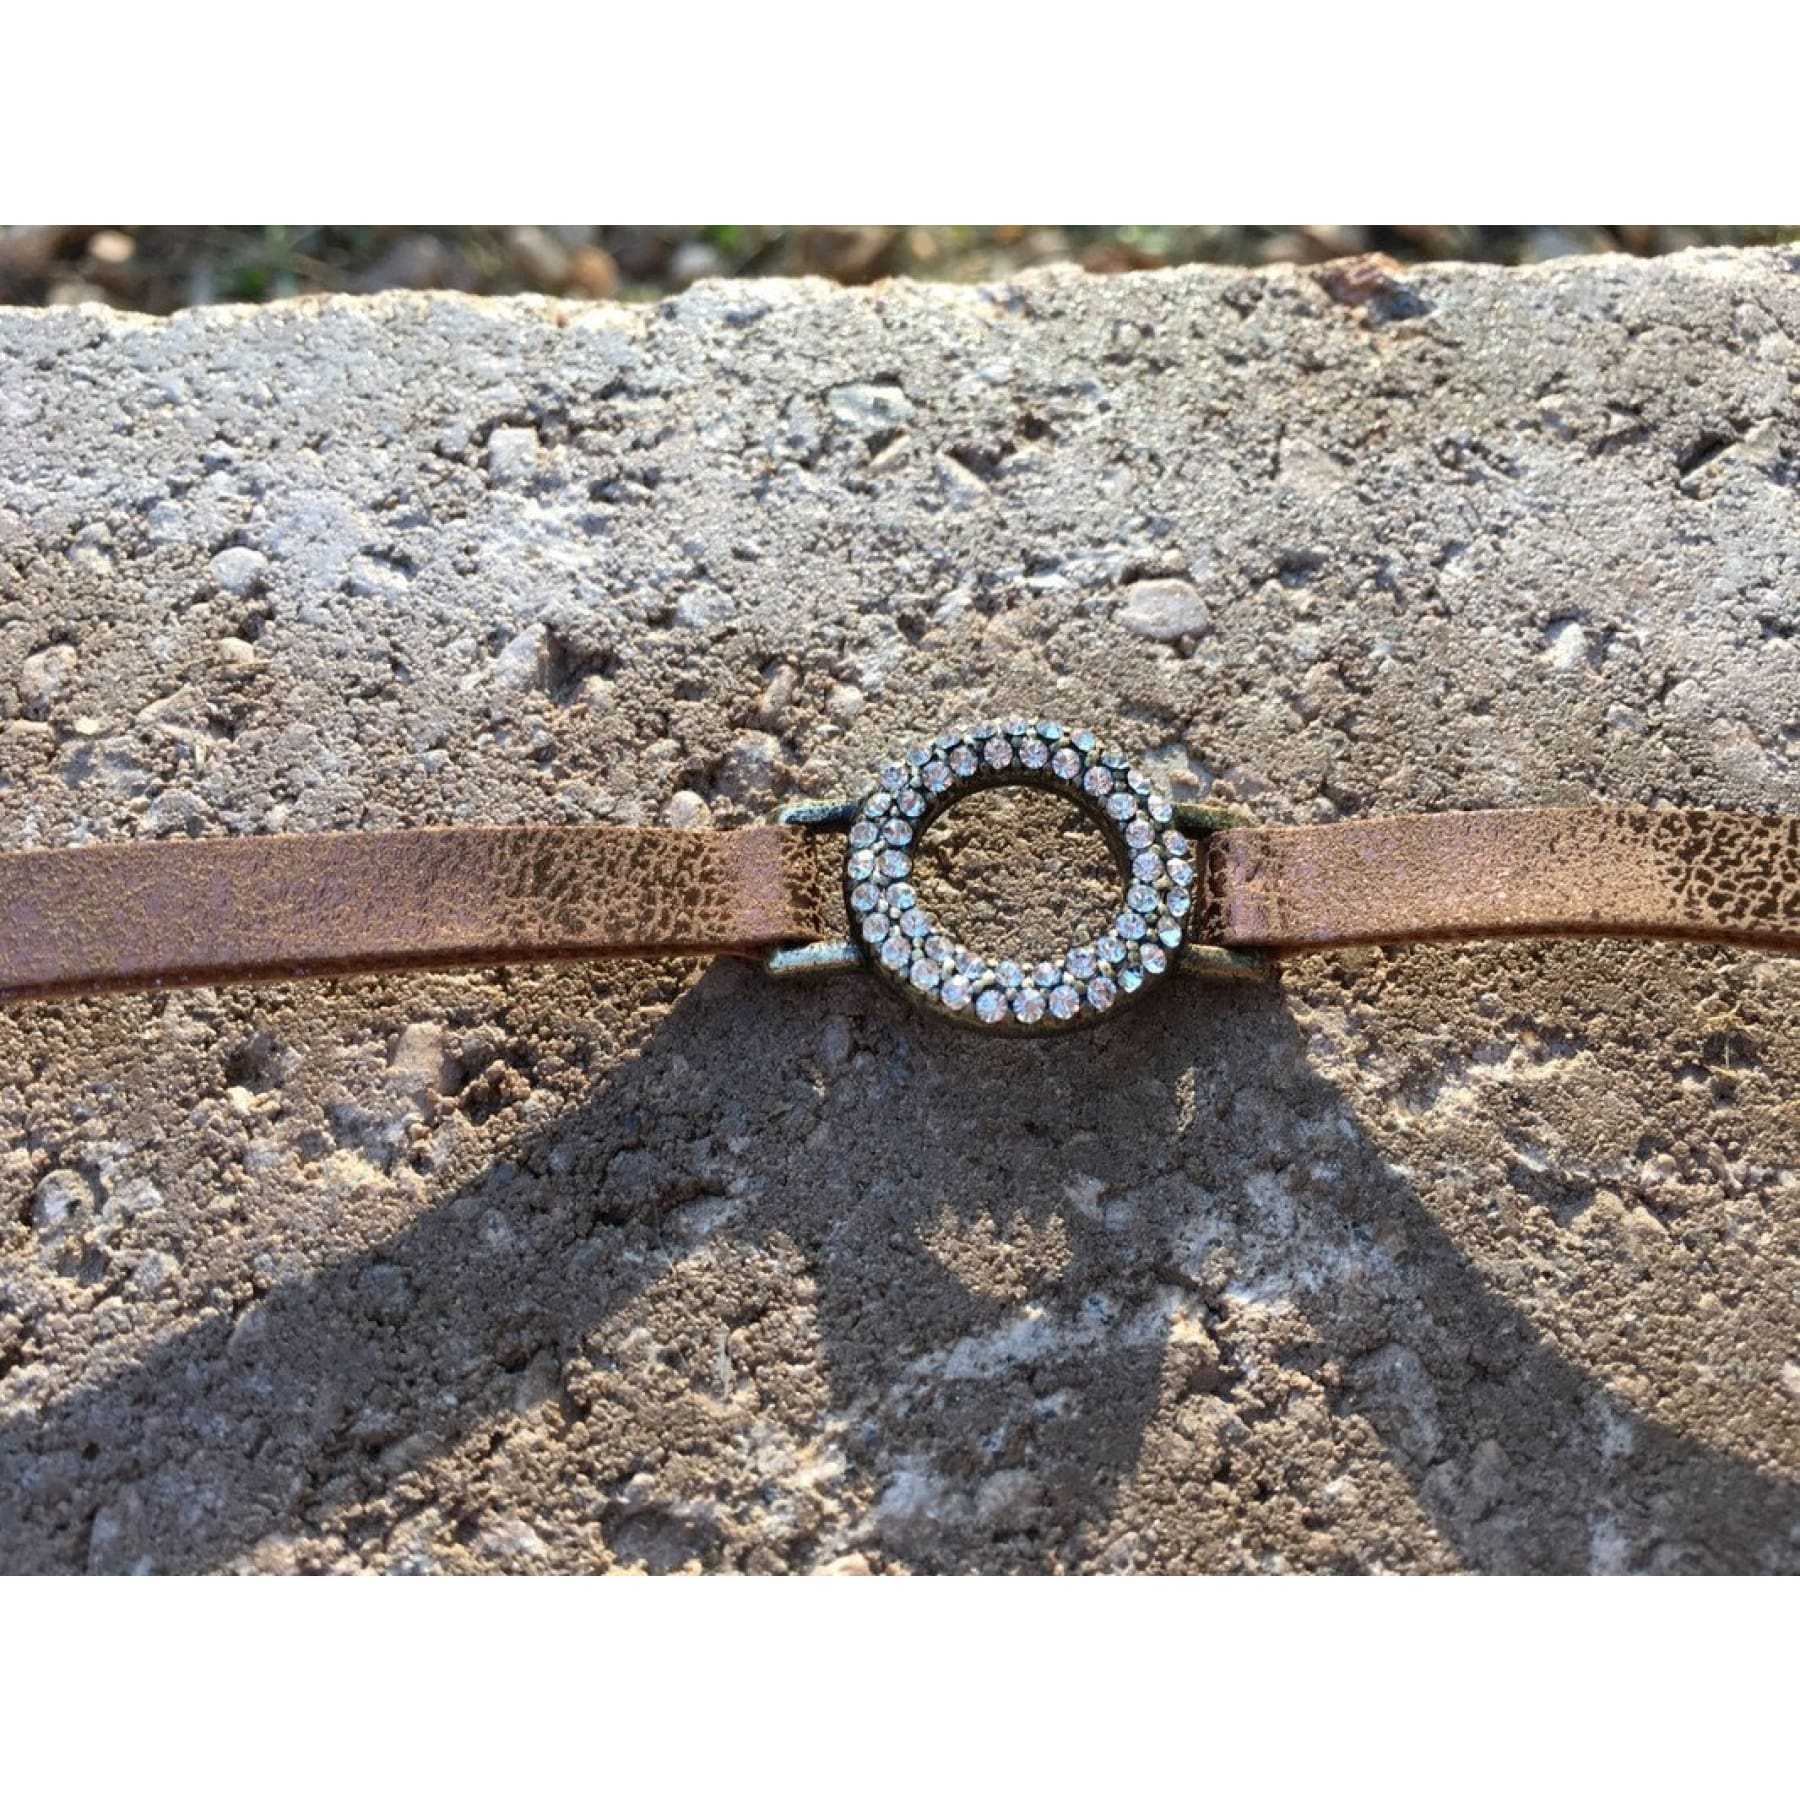 Small Circle of Life Crystal and Leather Cuff - Bracelet